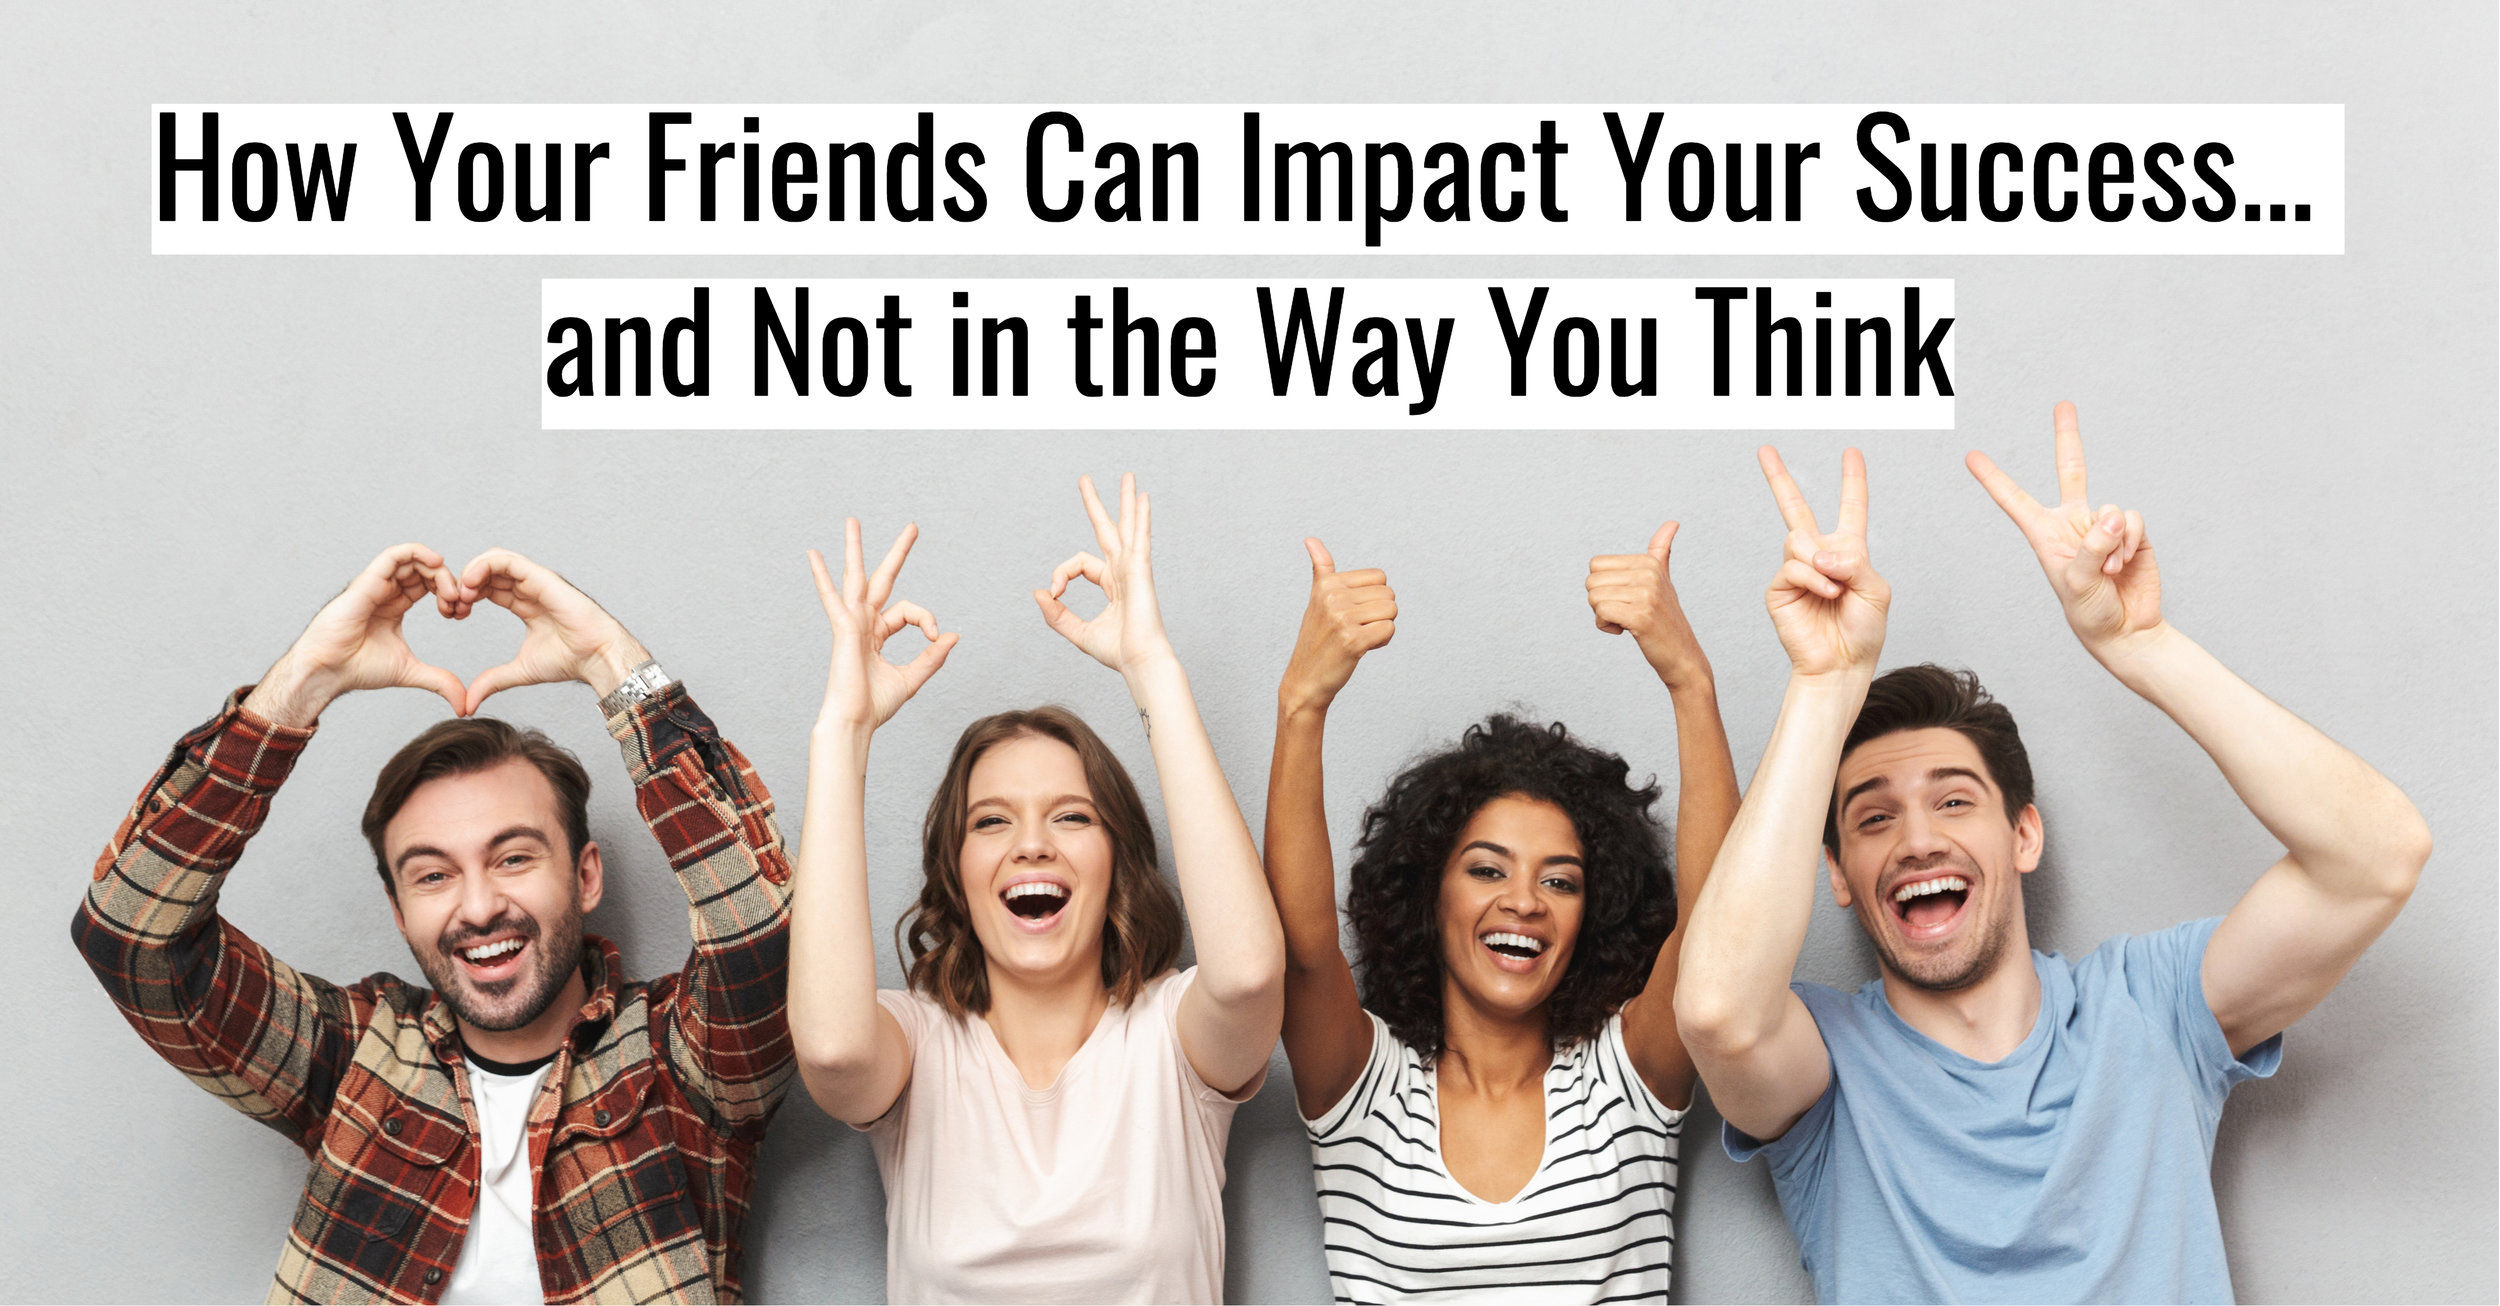 Carole Kirschner How Your Friends Impact Your Success.jpg